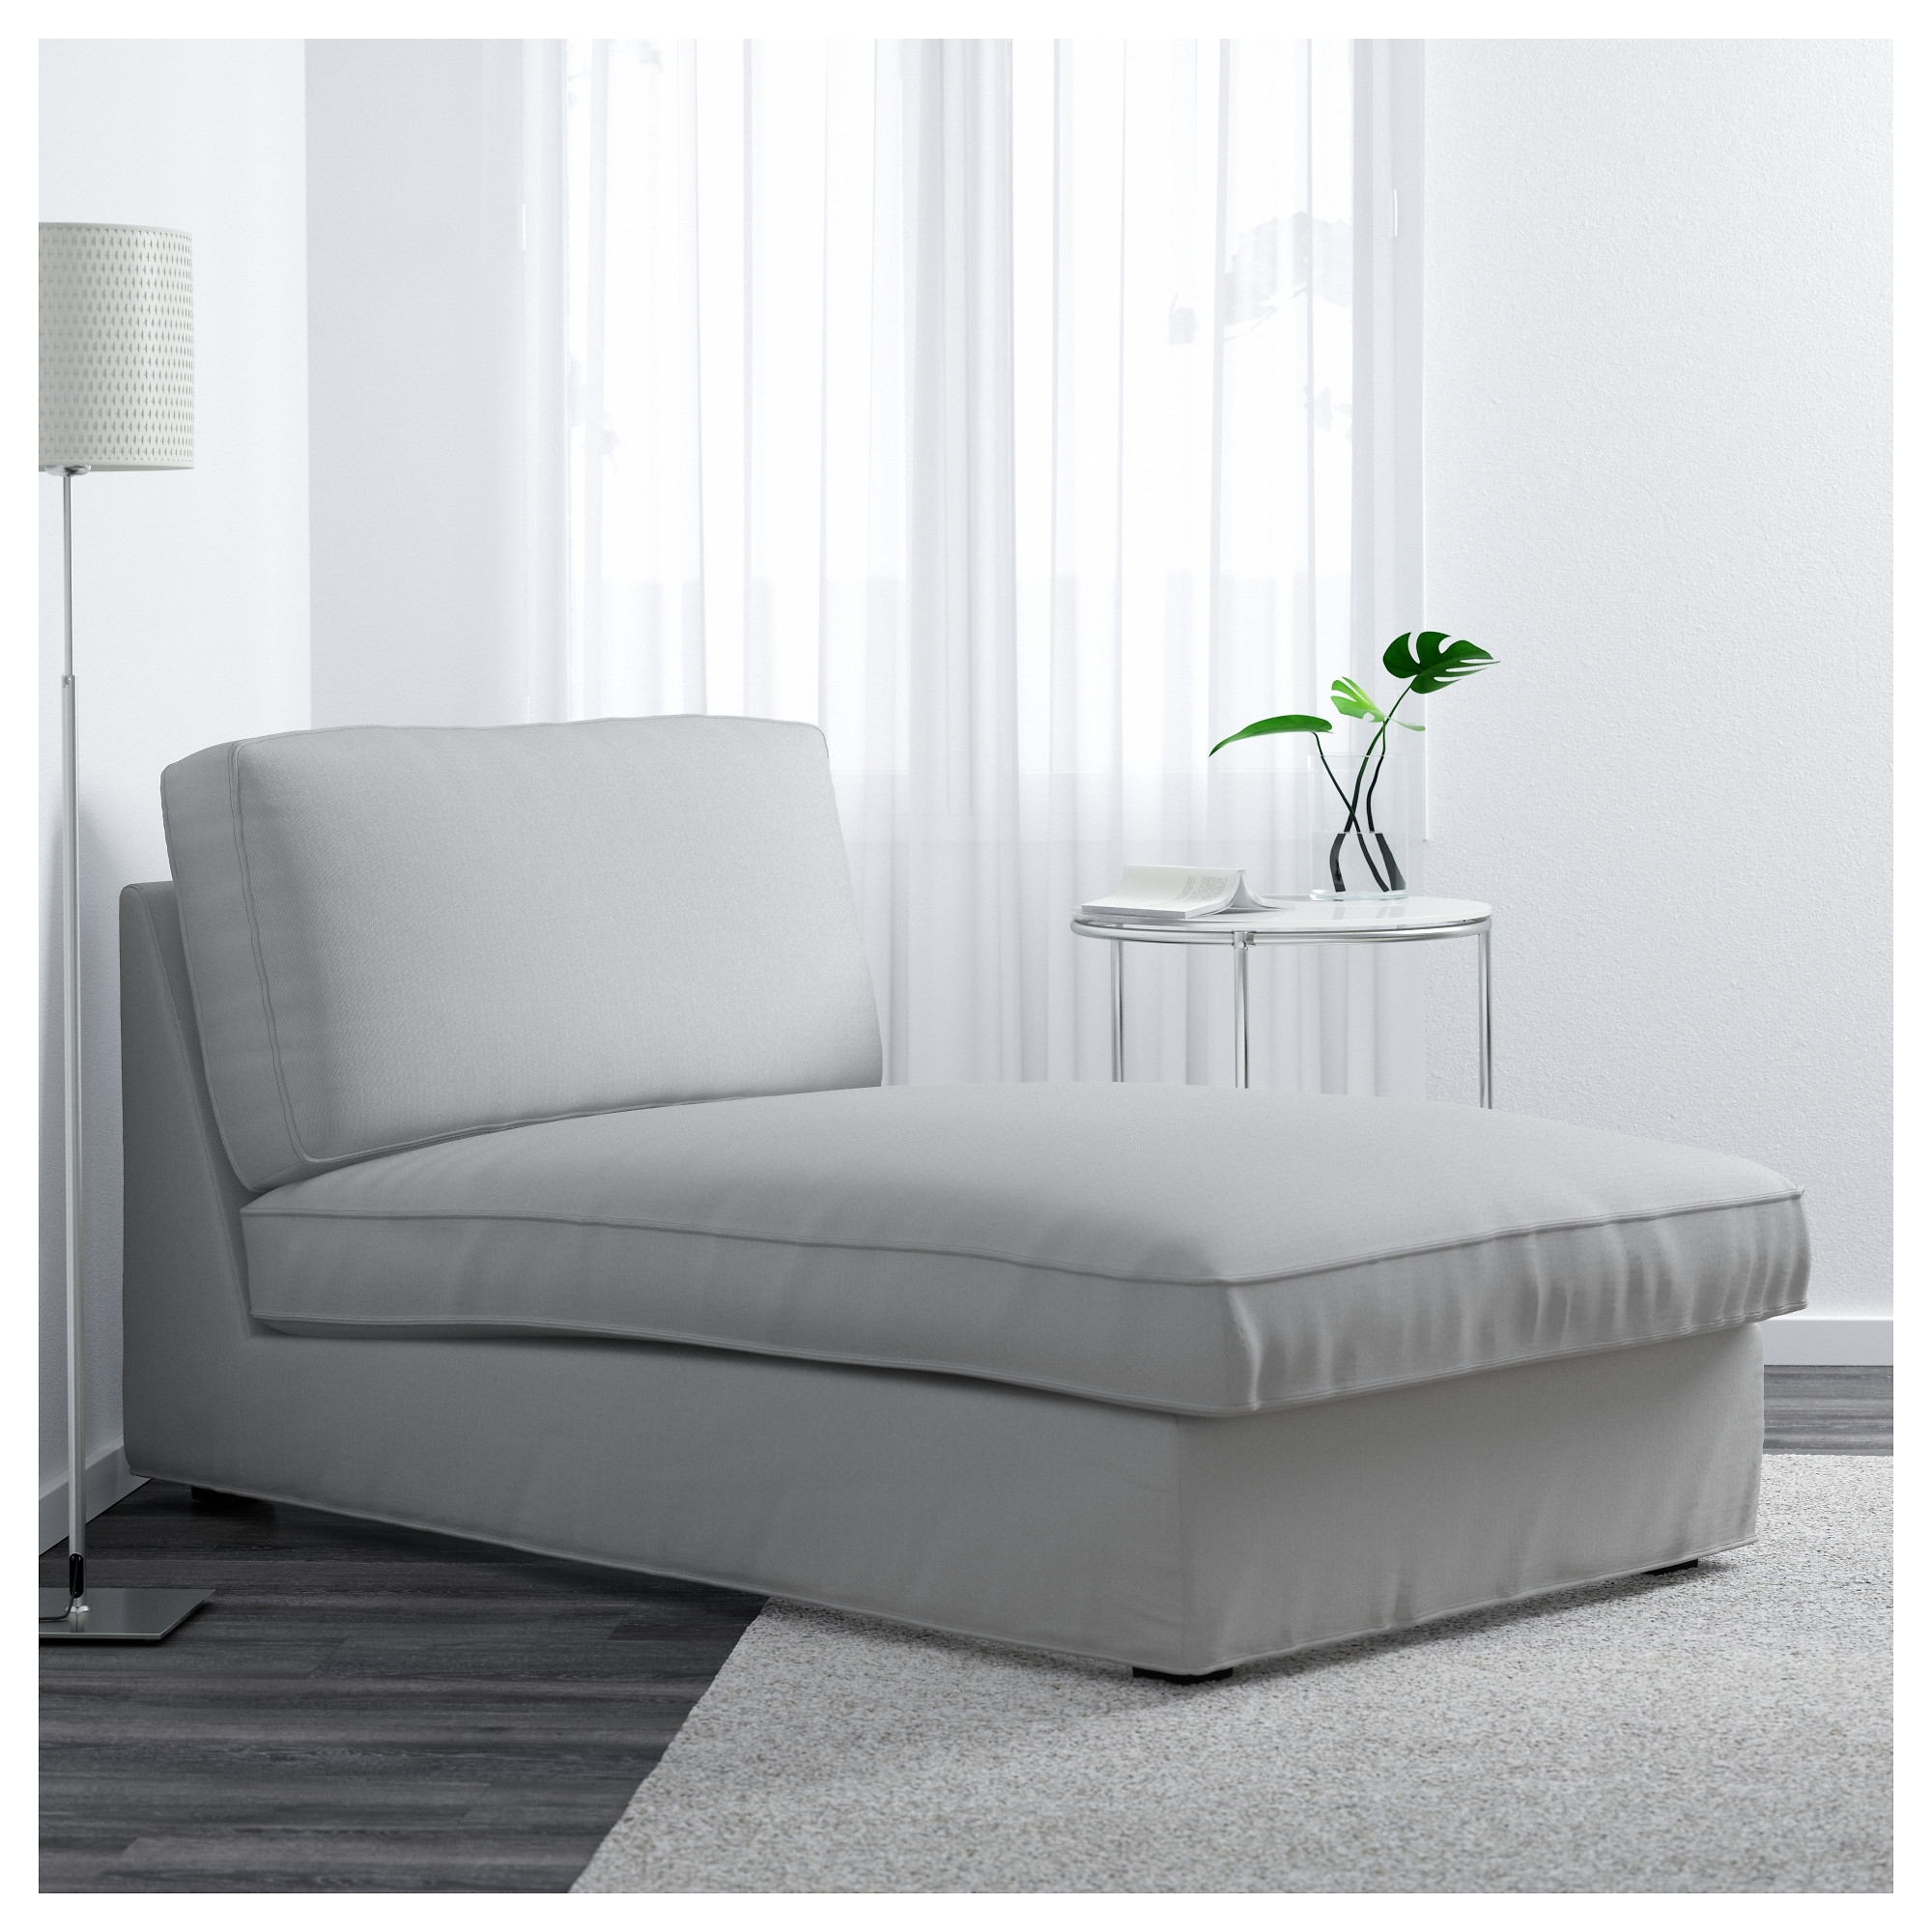 Well Known Kivik Chaise Longue Ramna Light Grey – Ikea Intended For Ikea Chaise Lounge Chairs (View 15 of 15)